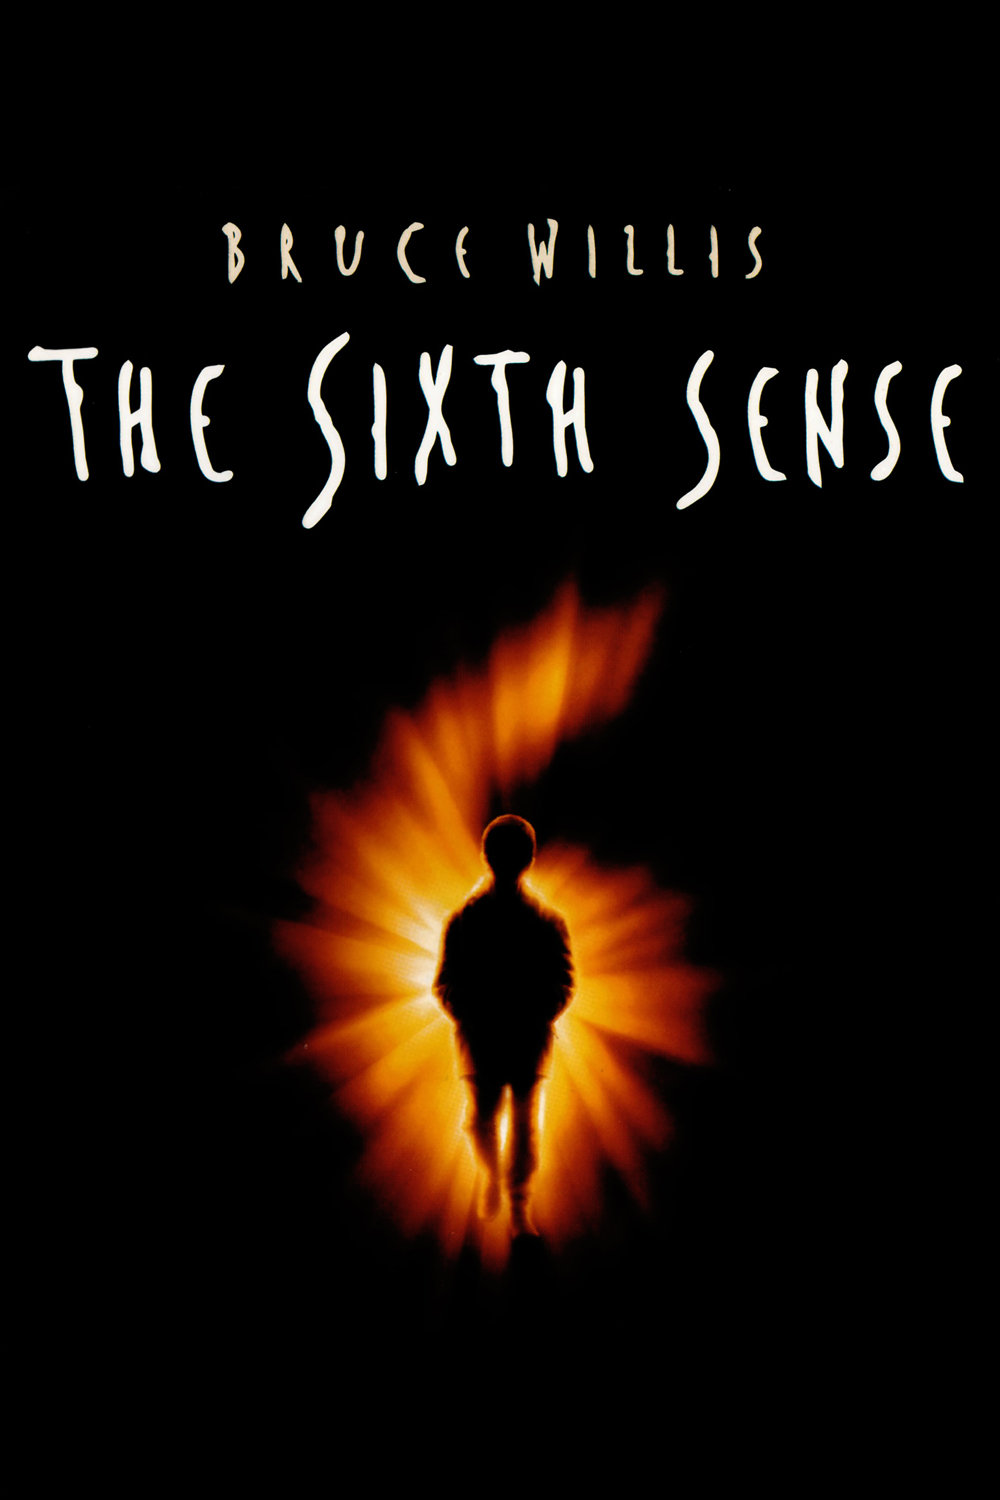 themes of the sixth sense A form to story you've reached the hub for any and all dramatica analysis of the sixth sense in addition to the storyform, you'll also find any additional.